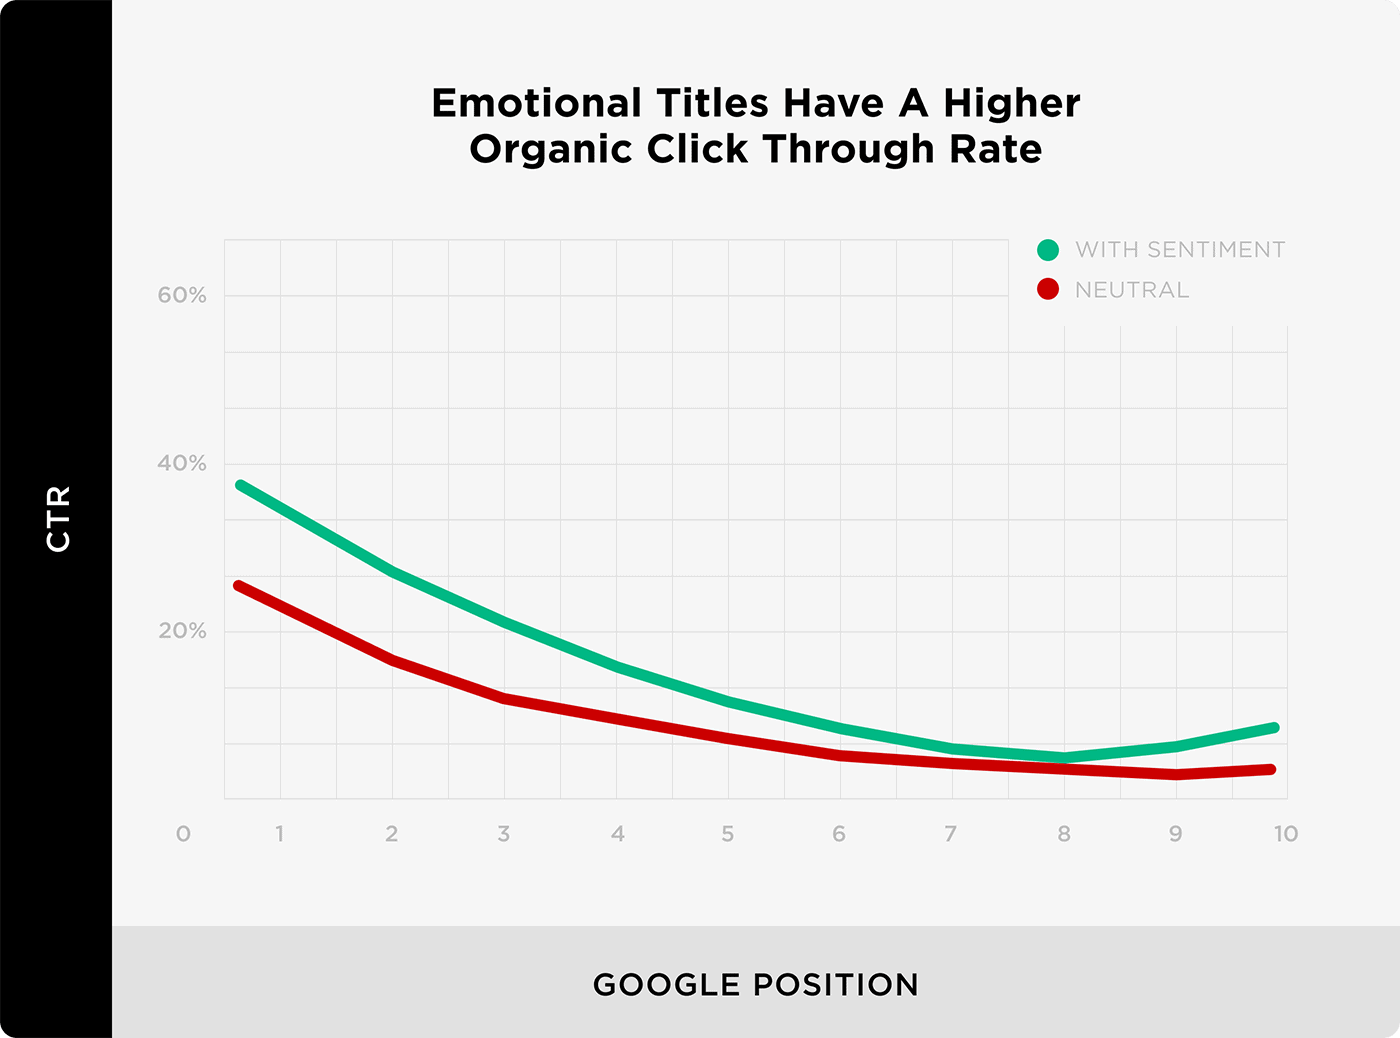 Emotional Titles Have A Higher Organic Click Through Rate